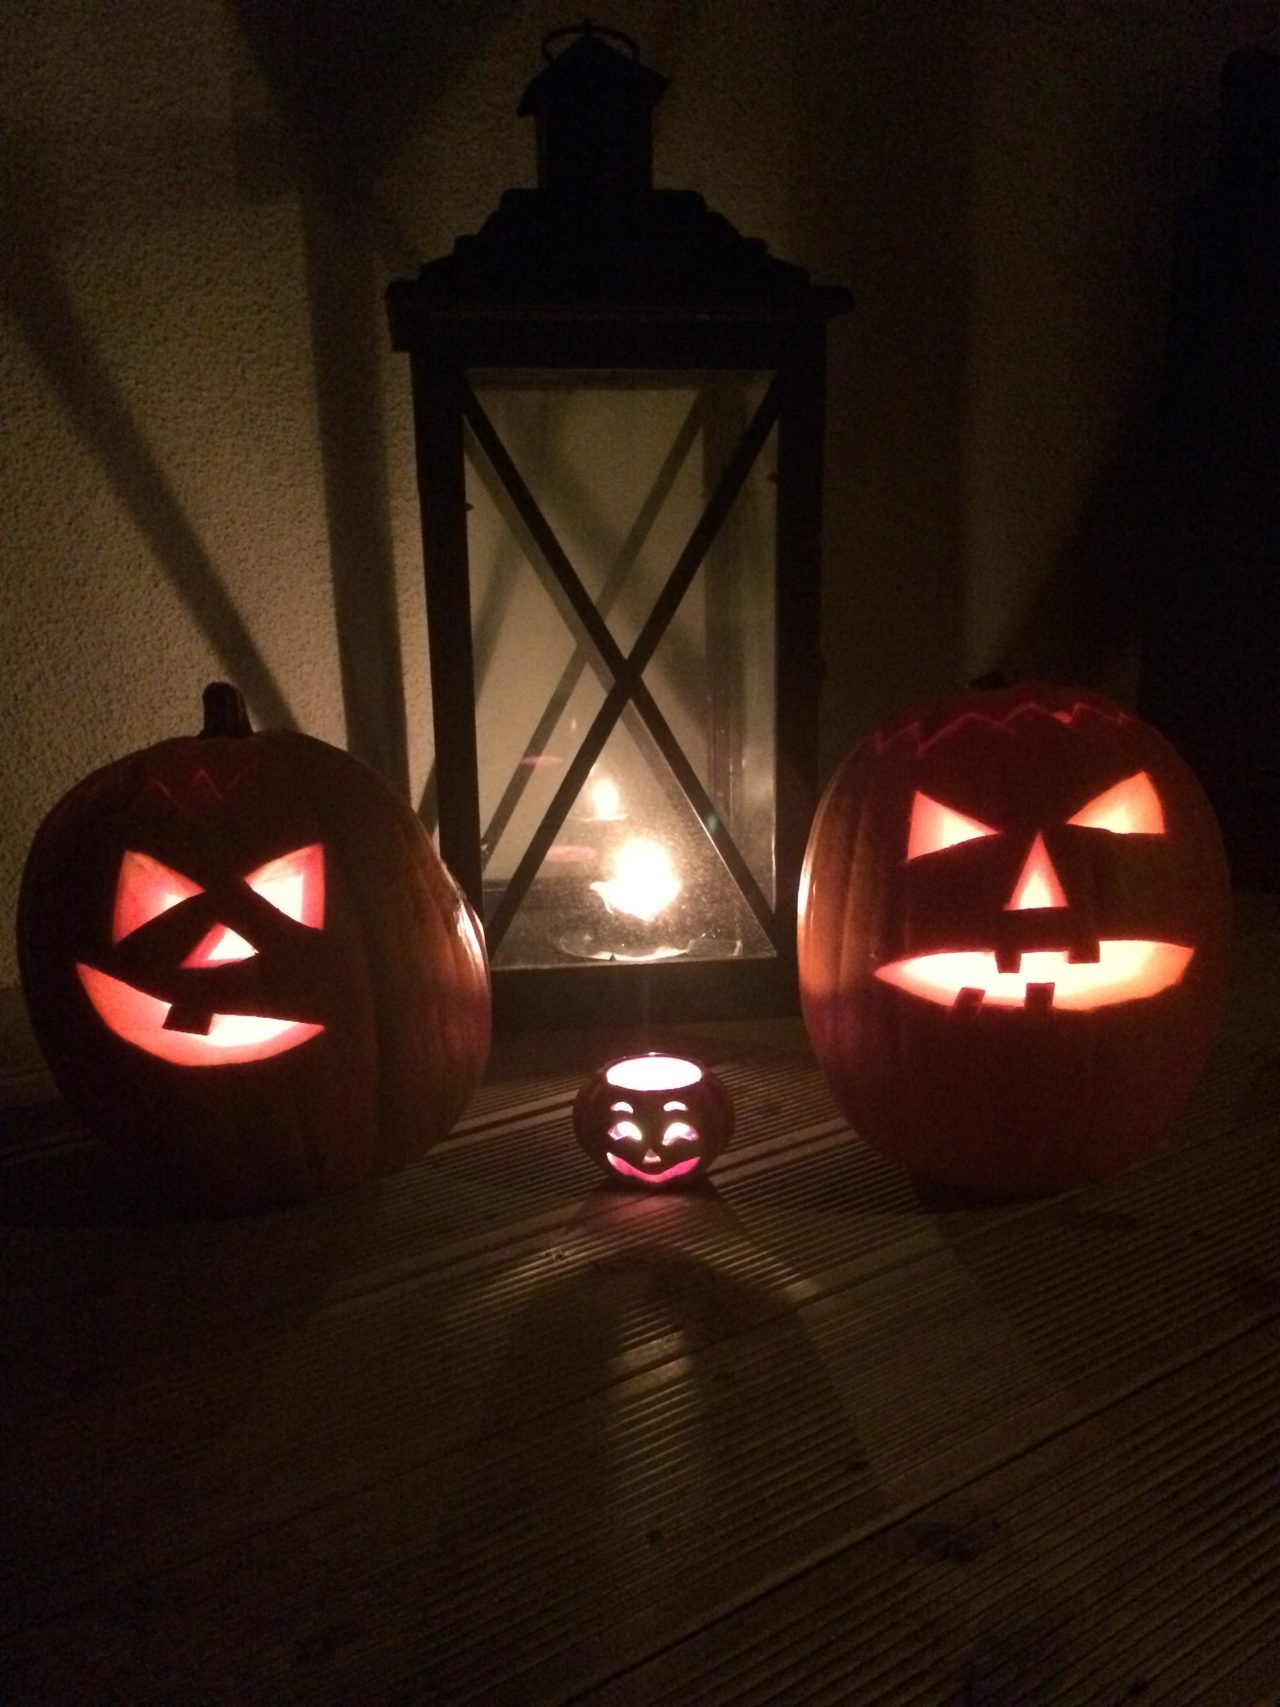 Scary Pumpkins And A Little Cute Pumpkin In The Dark On Halloween With Lighted Tealights In